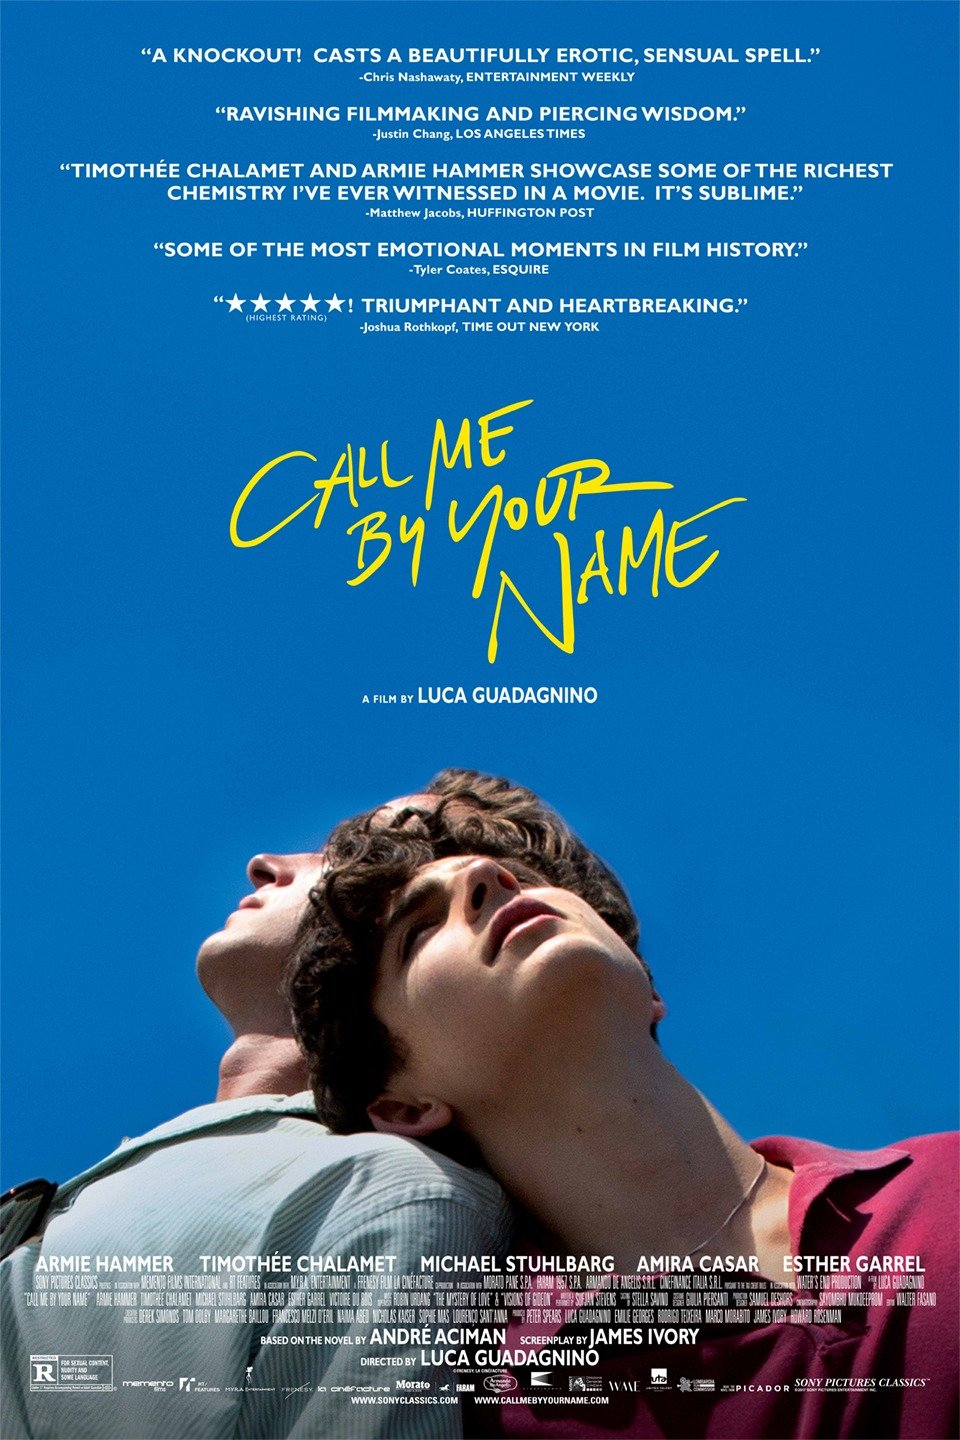 Erotic house idiot